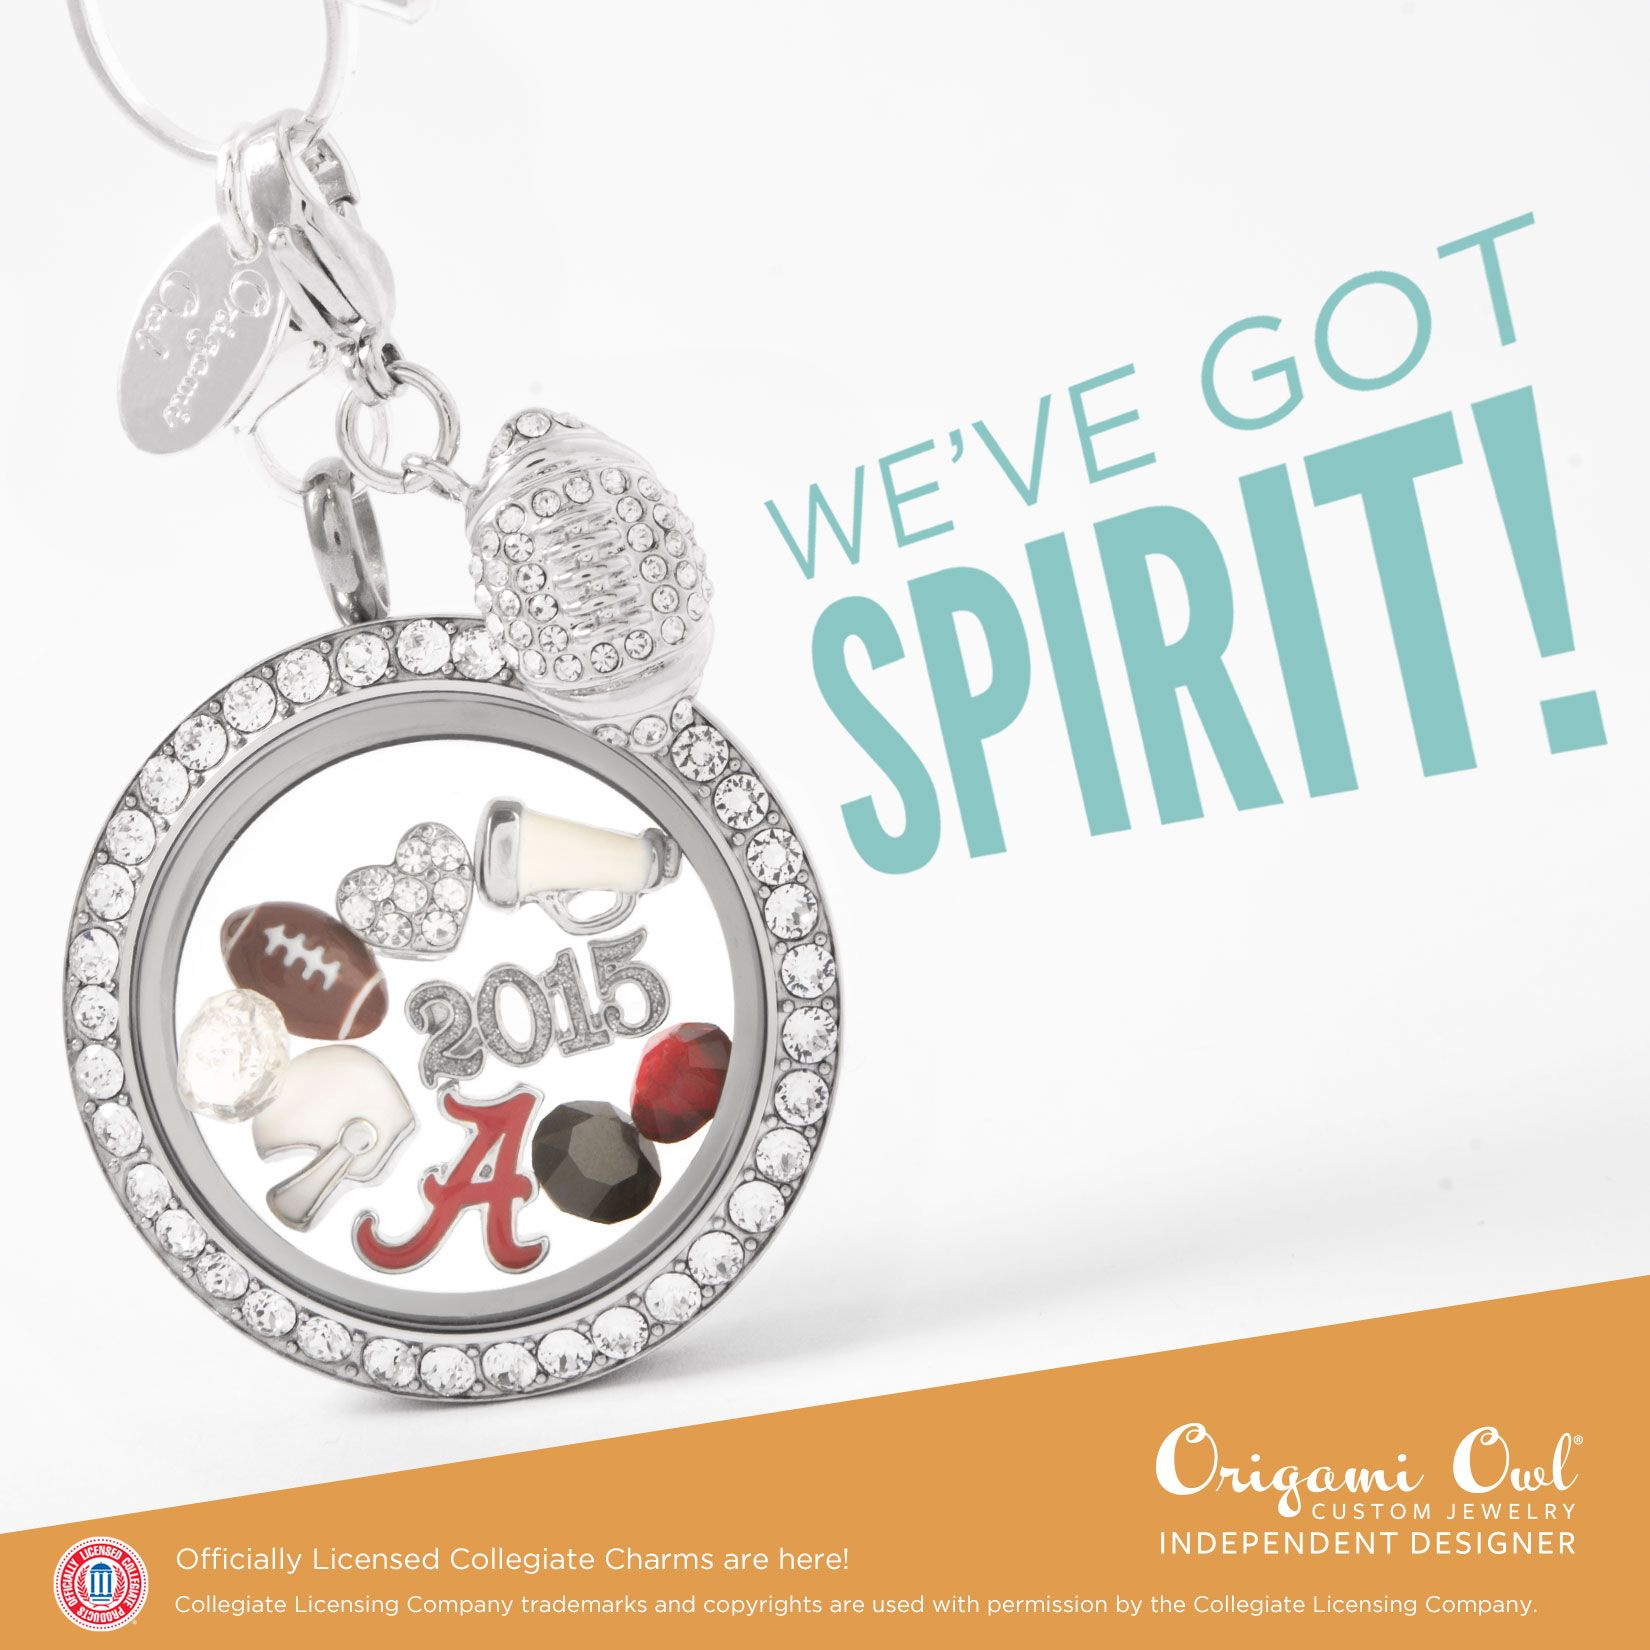 Weve got spirit bama rolltide sec football origamiowl join origami owl is a leading custom jewelry company known for telling stories through our signature living lockets personalized charms and other products jeuxipadfo Gallery